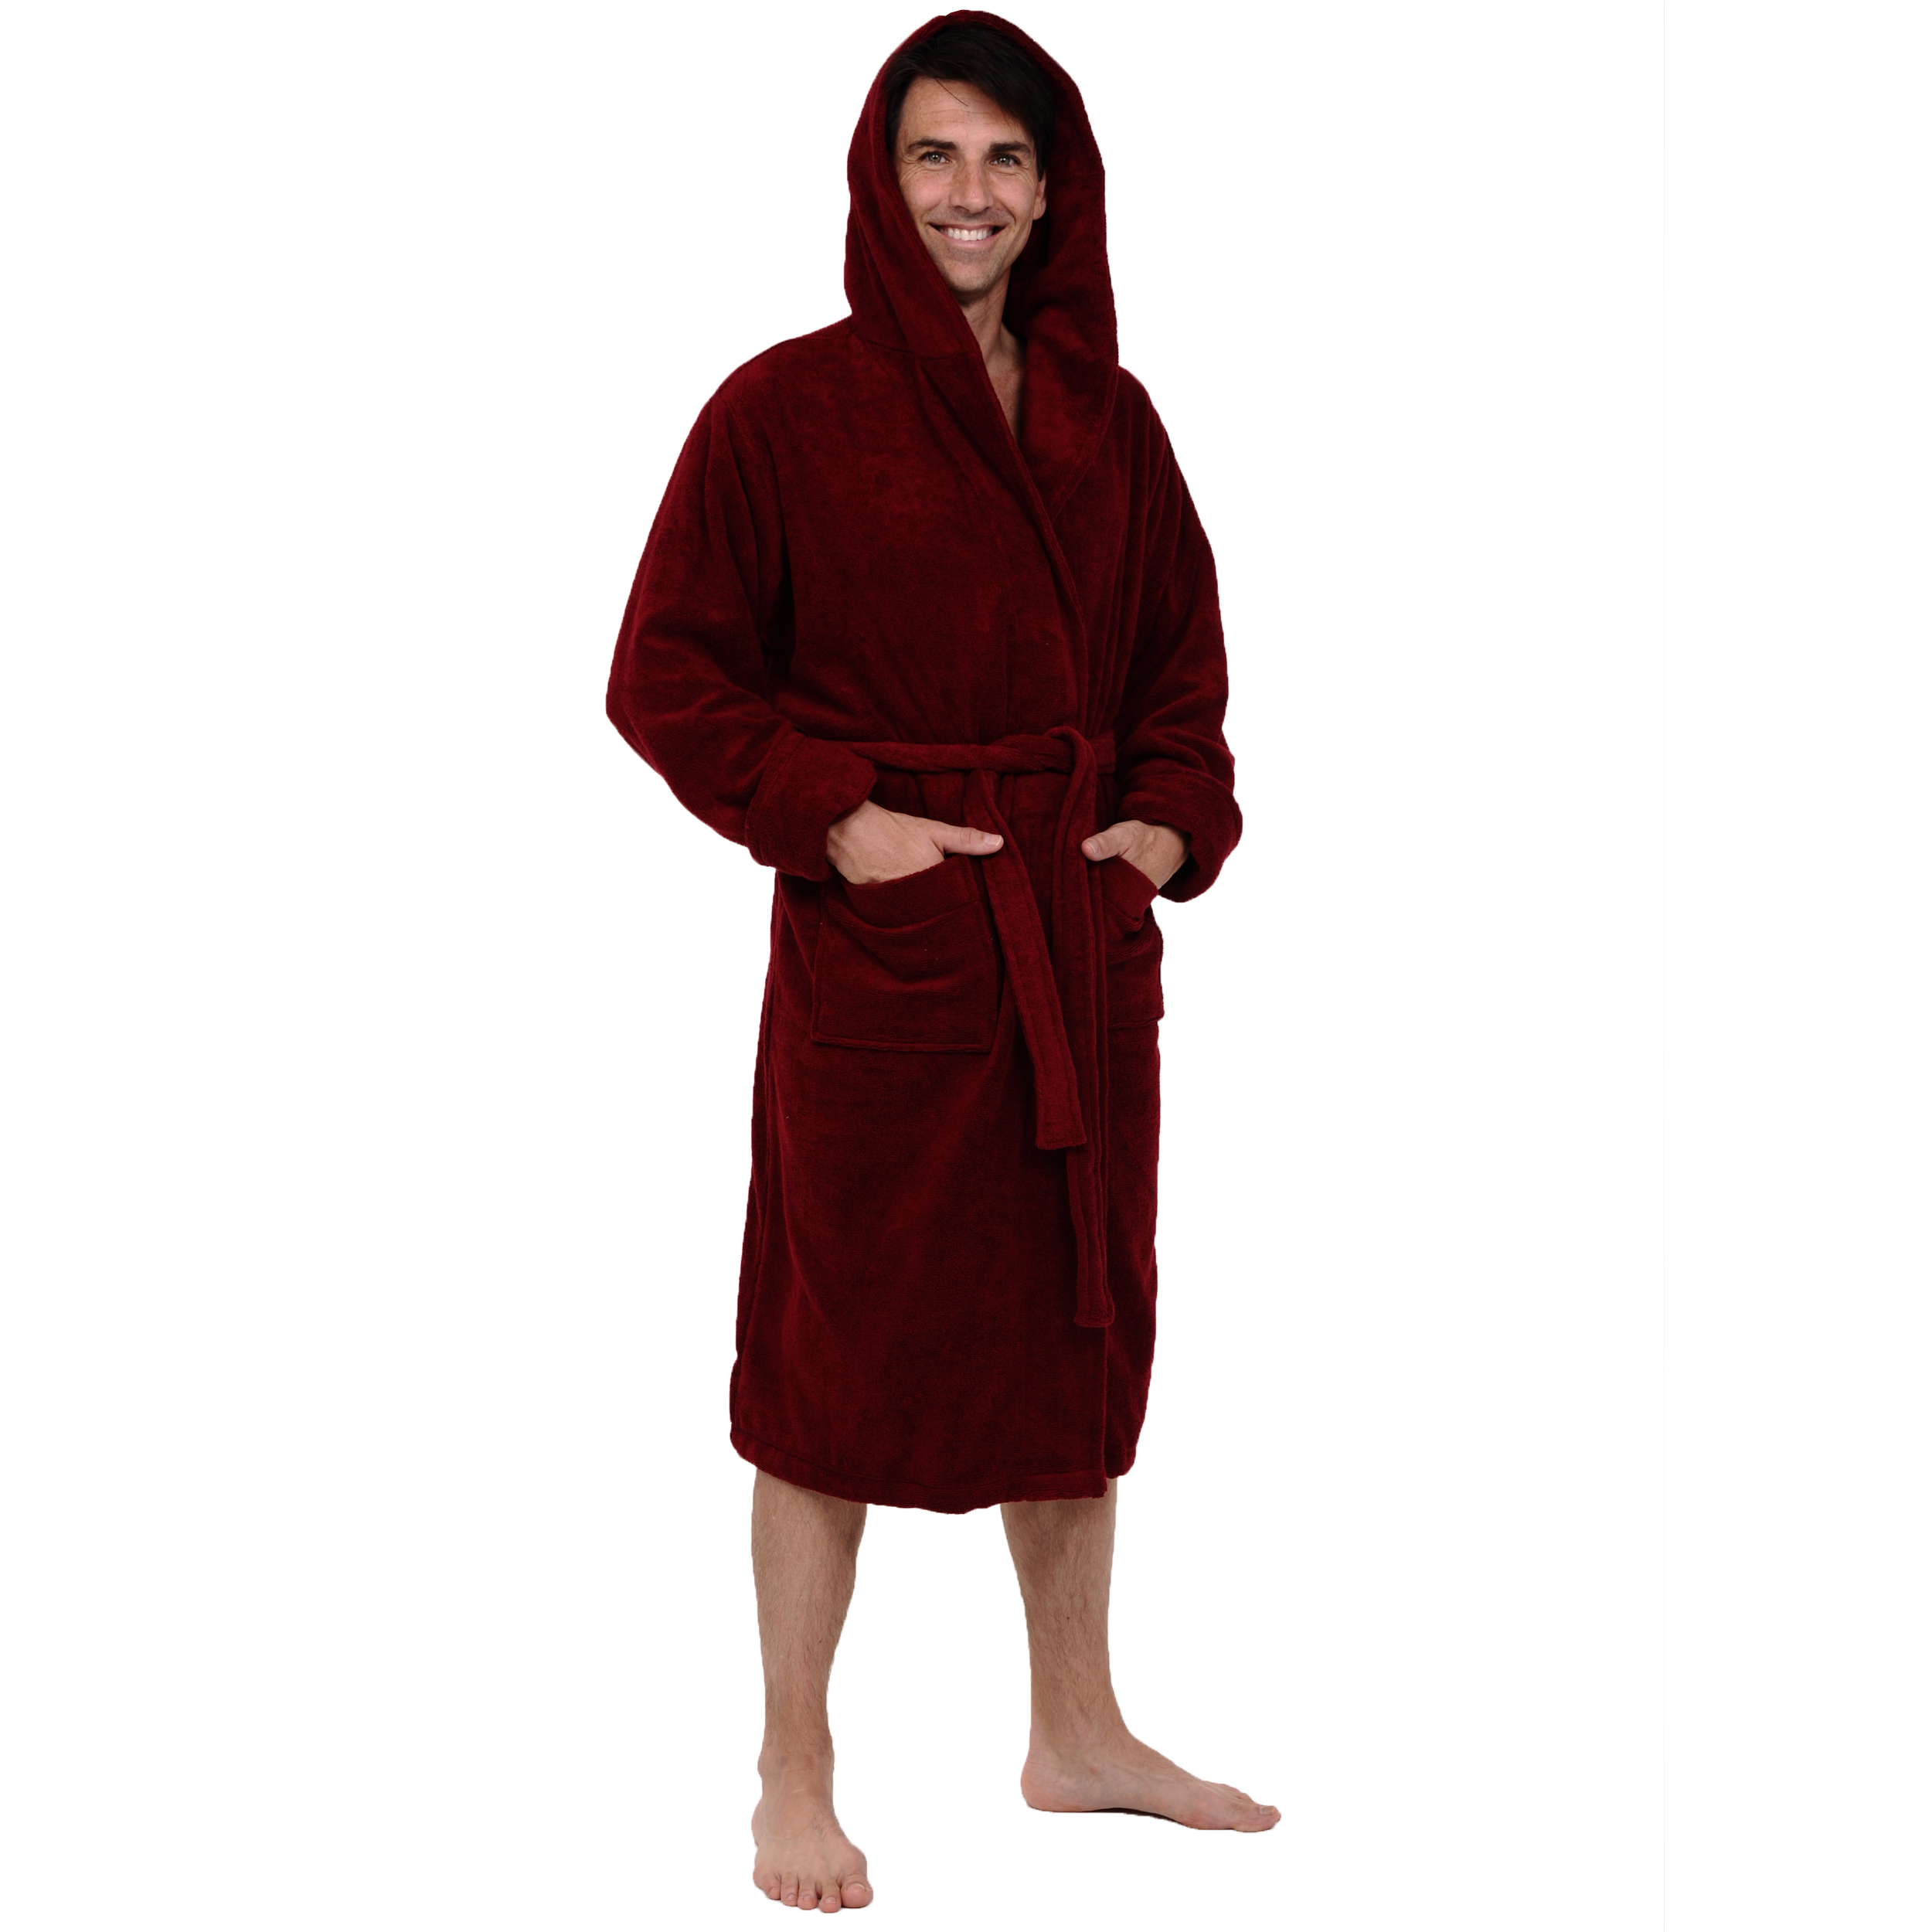 mens bath robes | terry cloth, cotton, fleece, and satin | del rossa